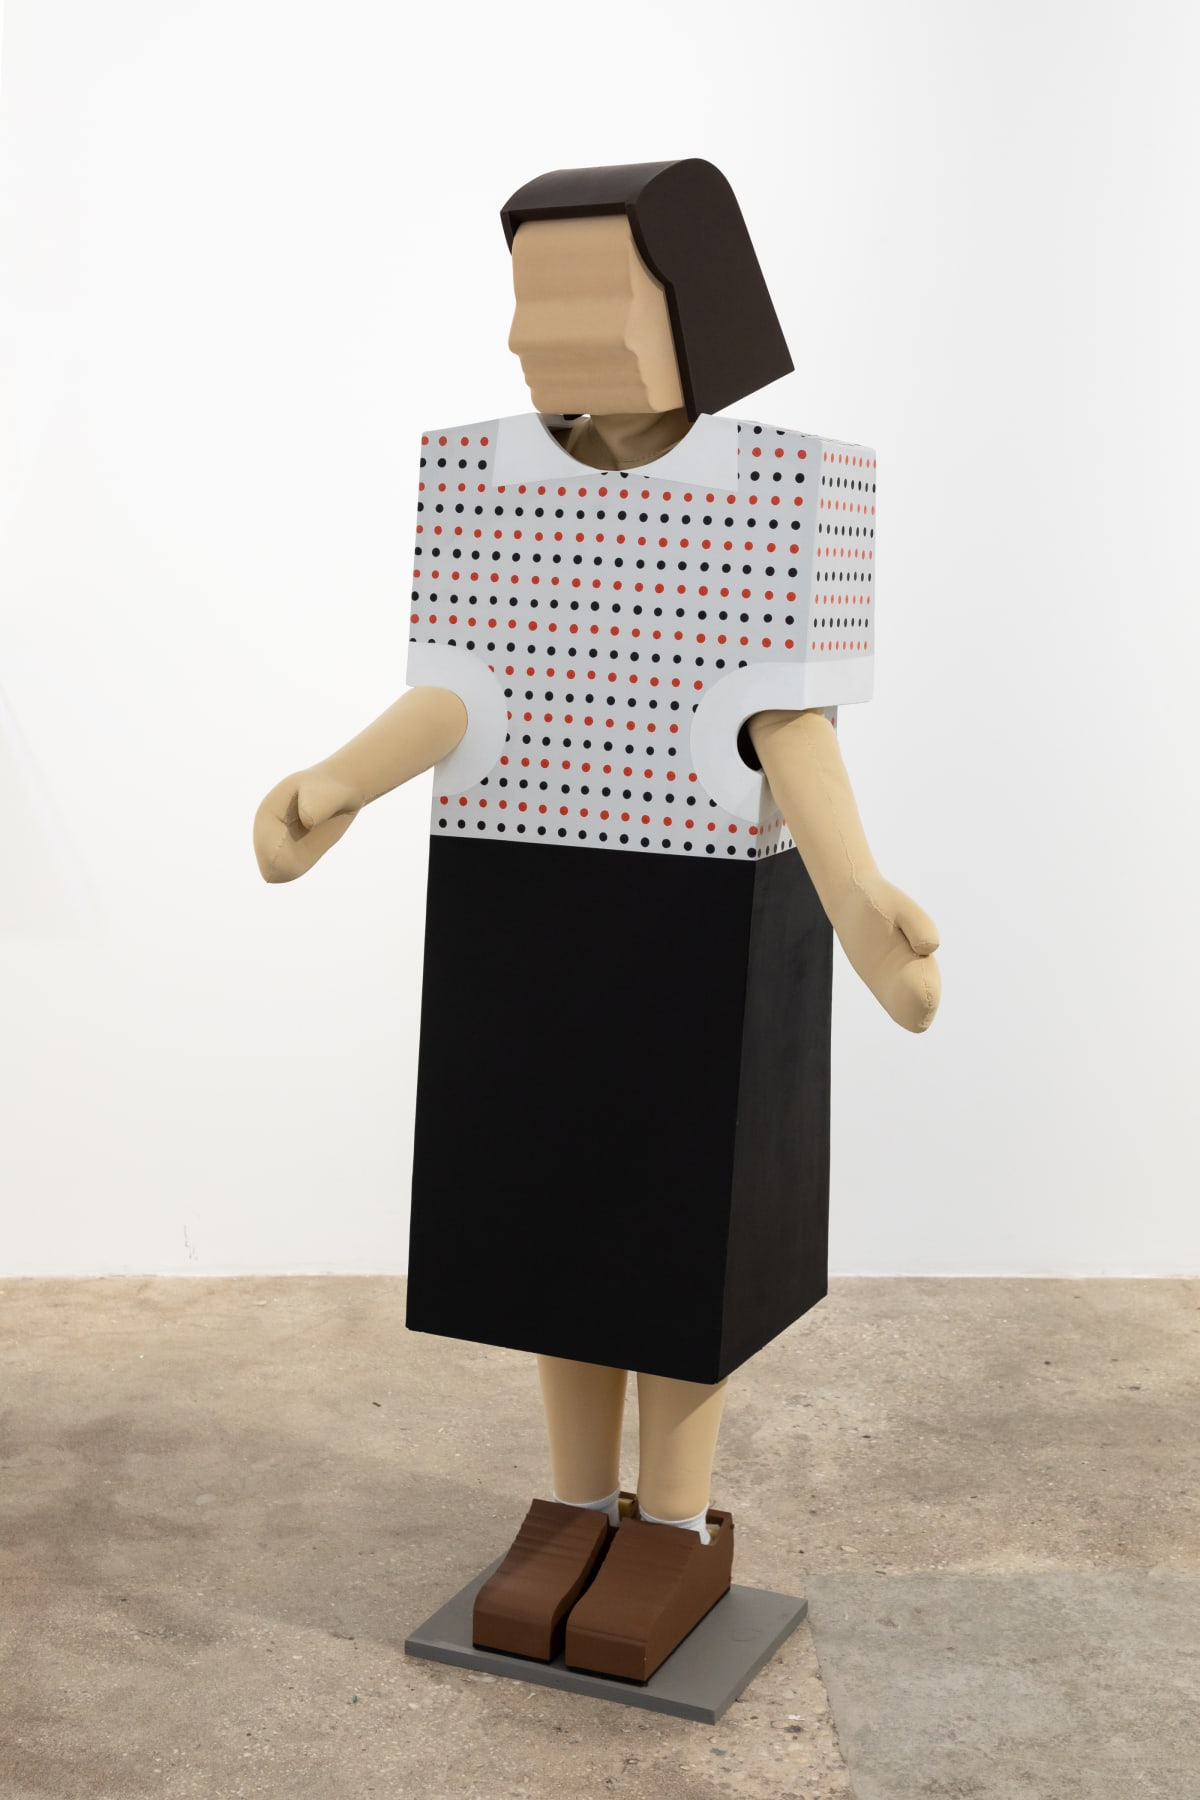 Meredith James Costume from Mobius City, 2015